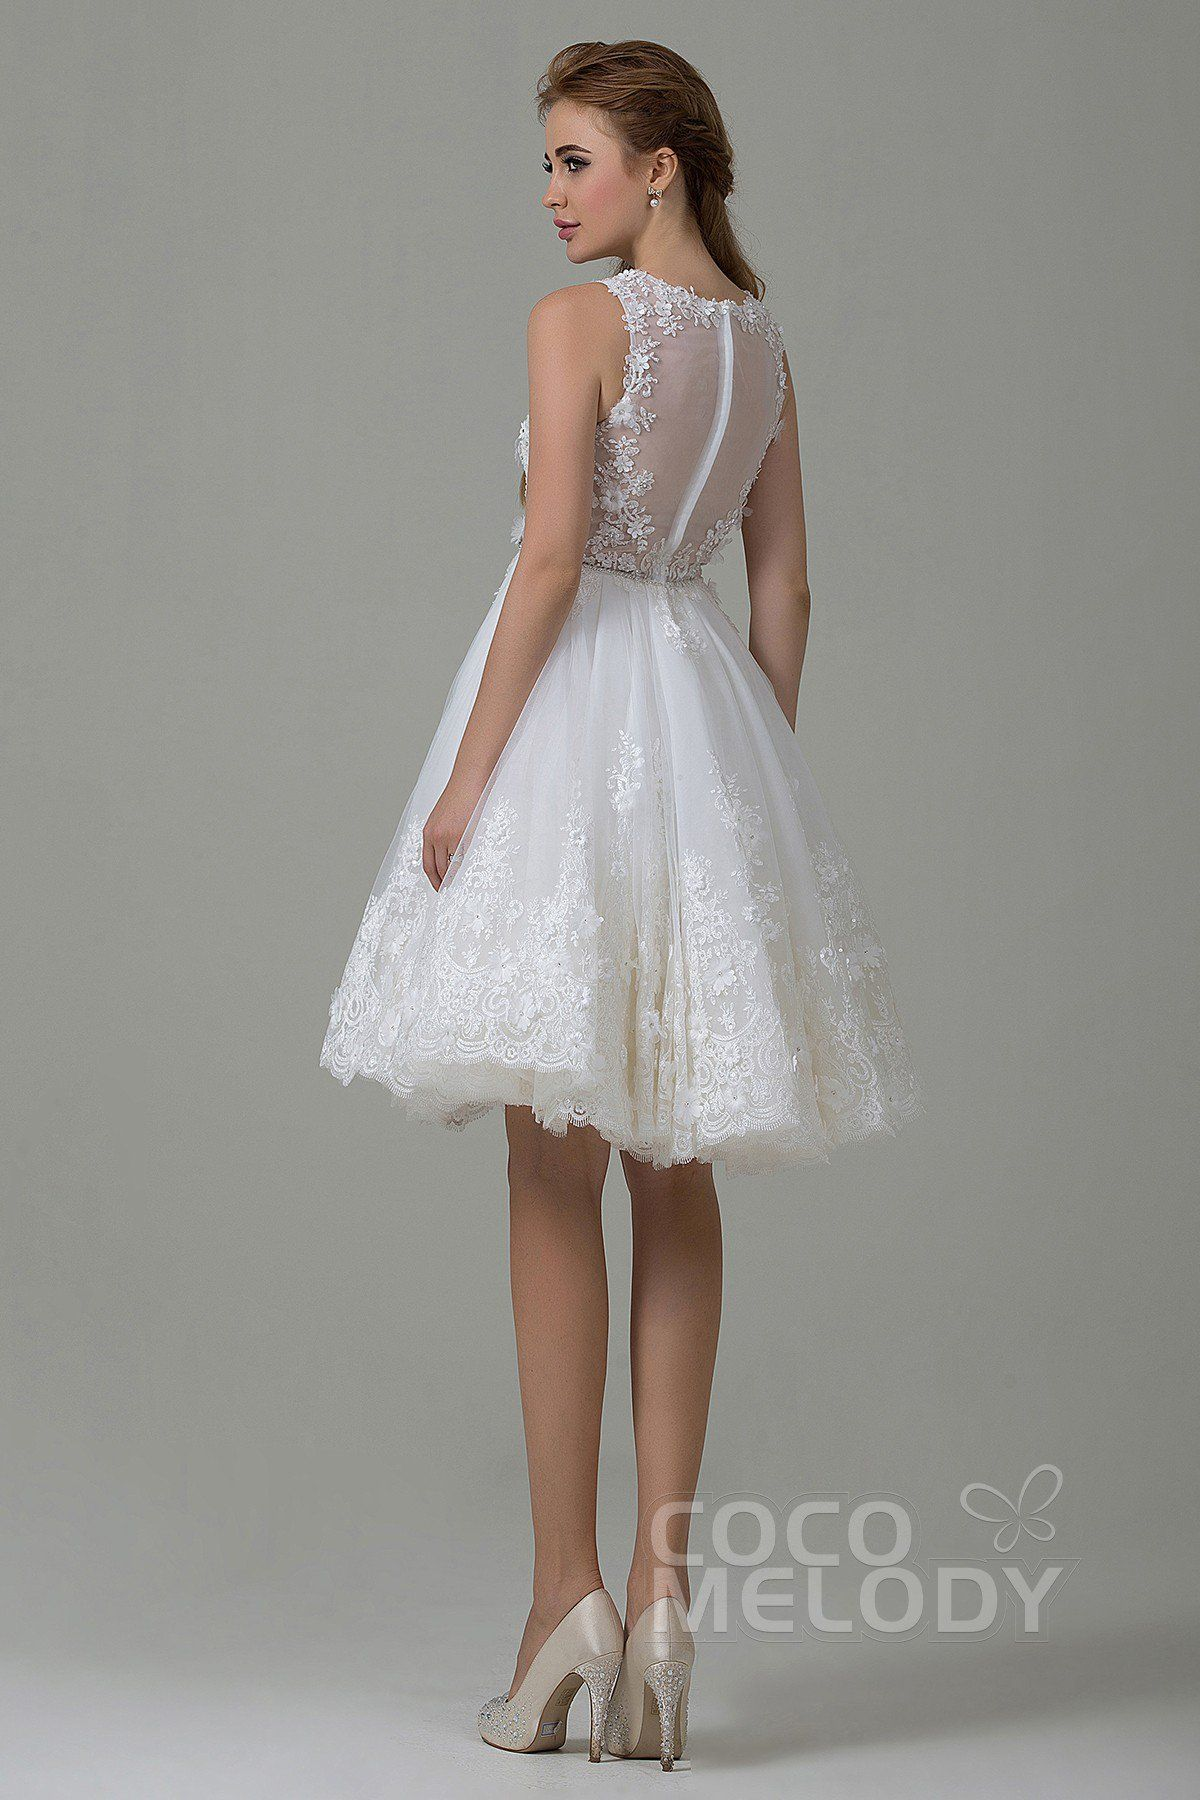 New arrival aline illusion natural knee length tulle and lace ivory